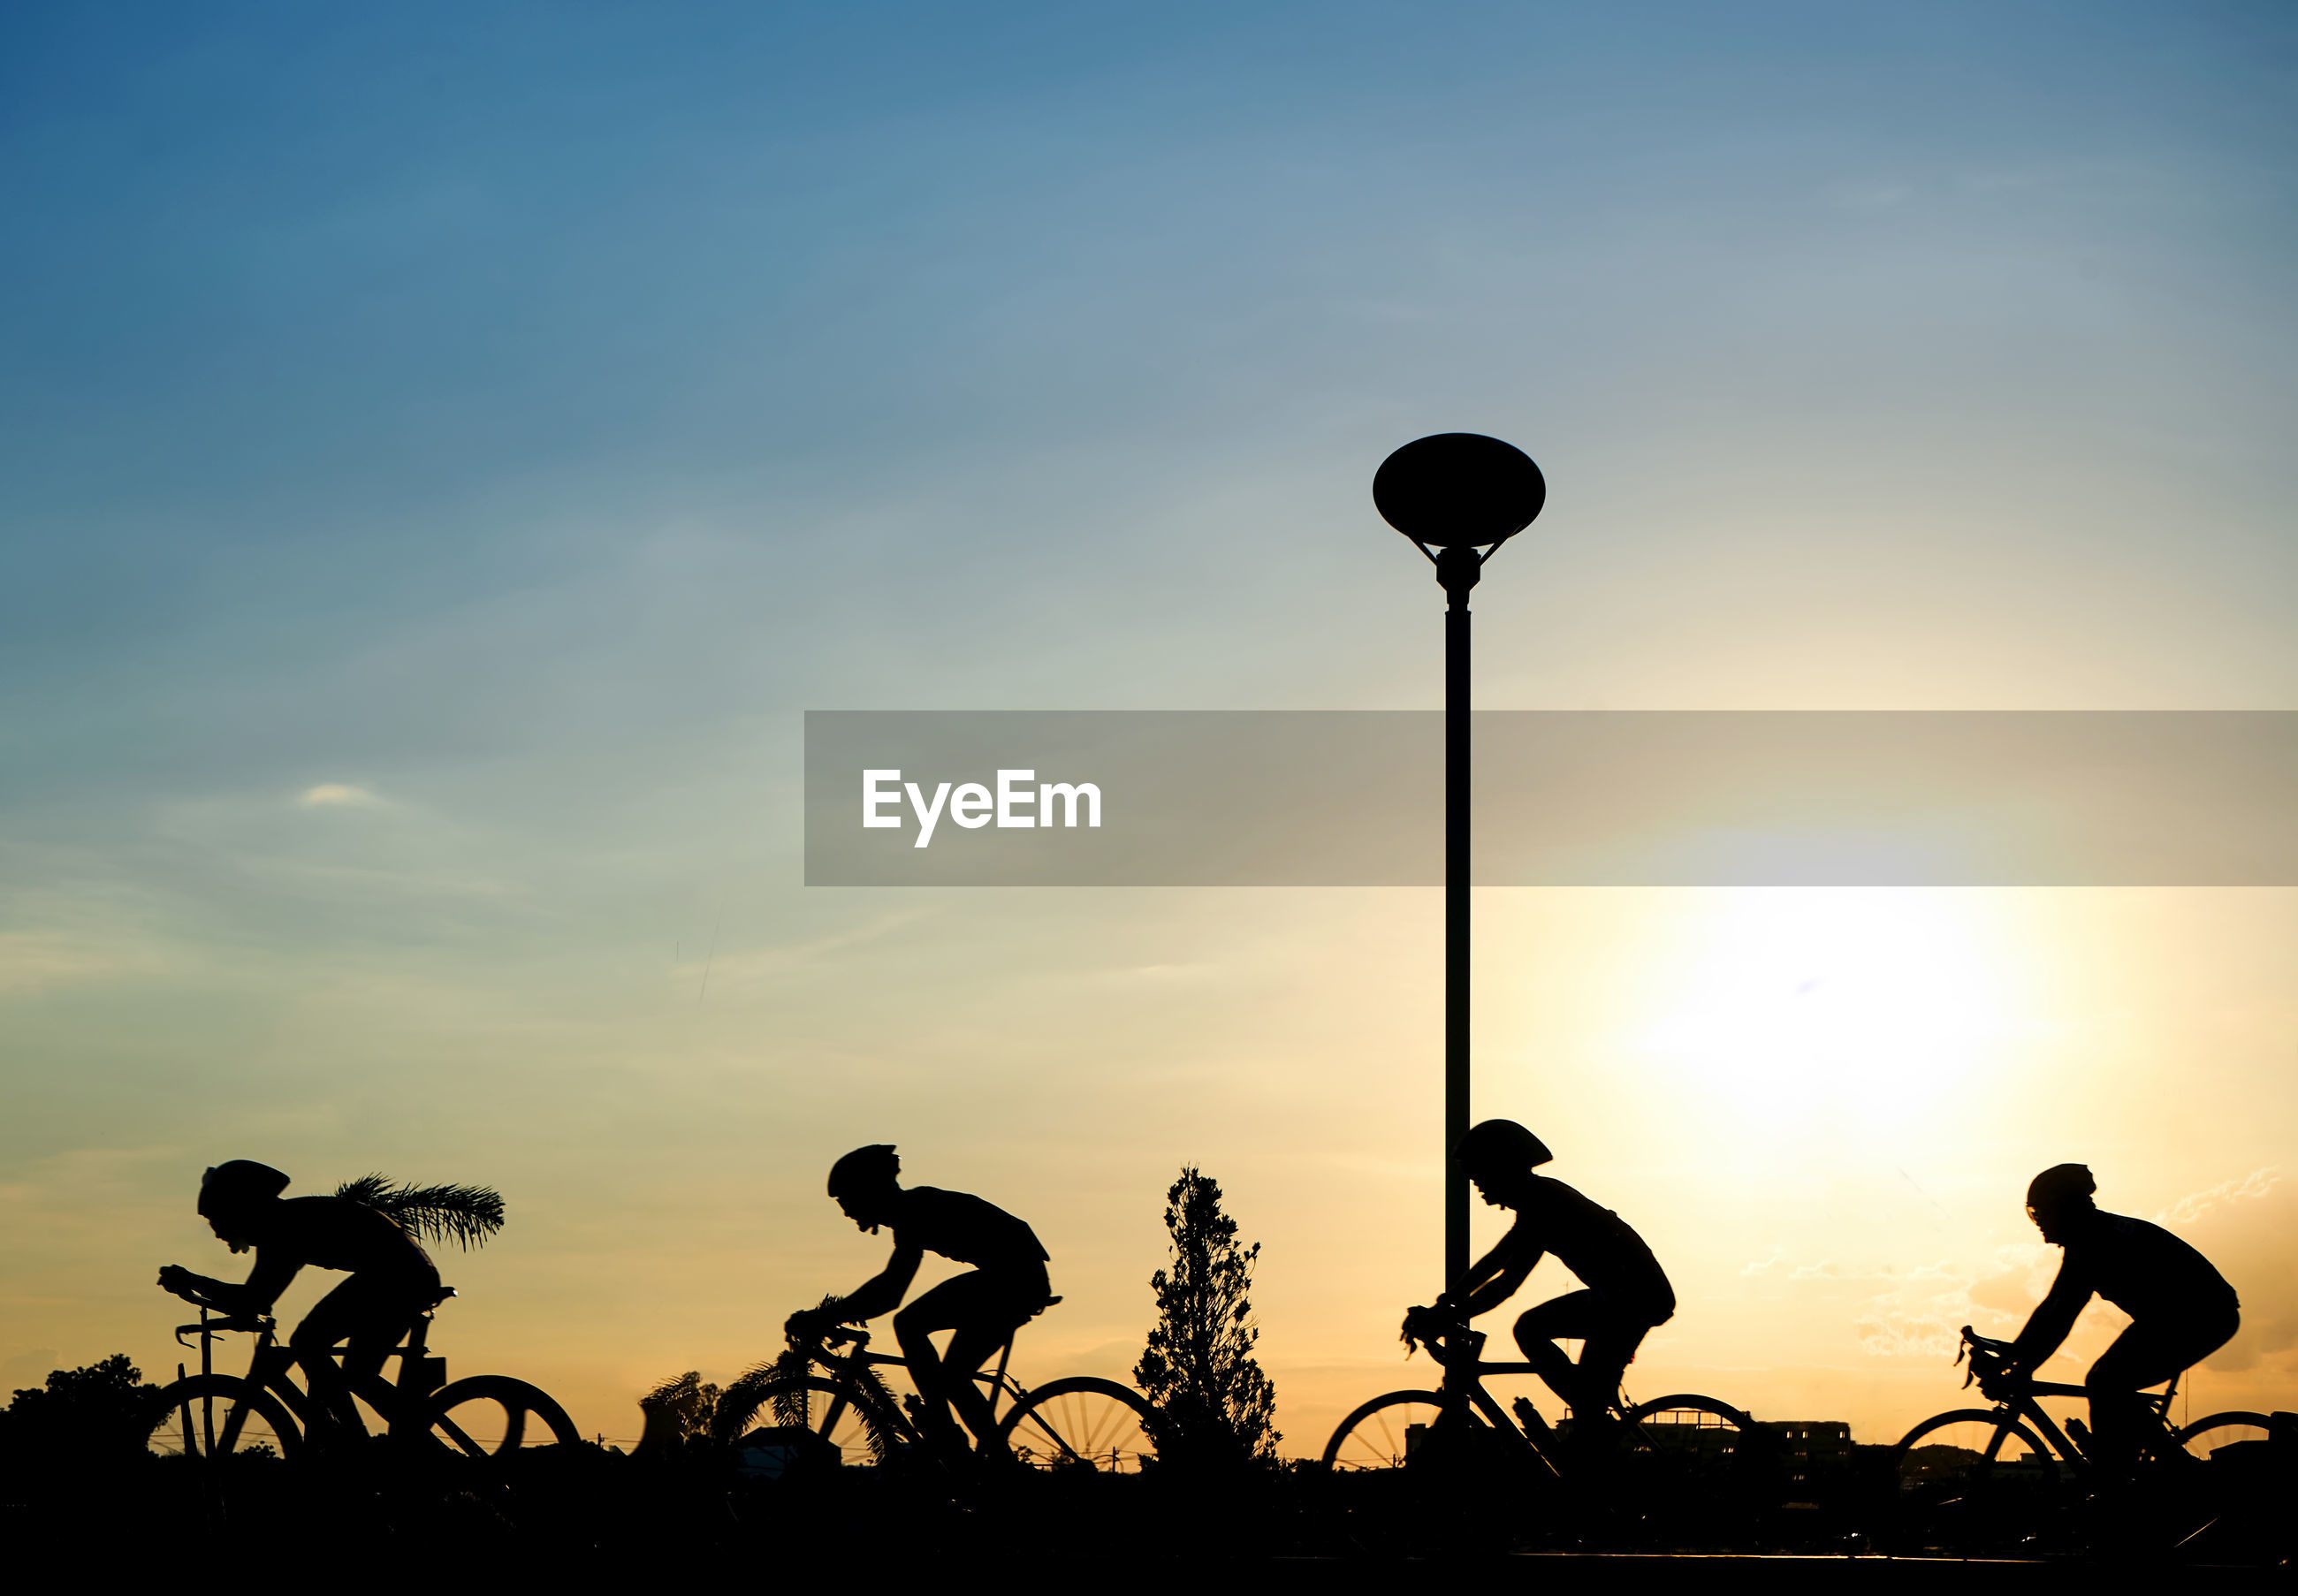 Silhouette people riding bicycles on street against sky during sunset